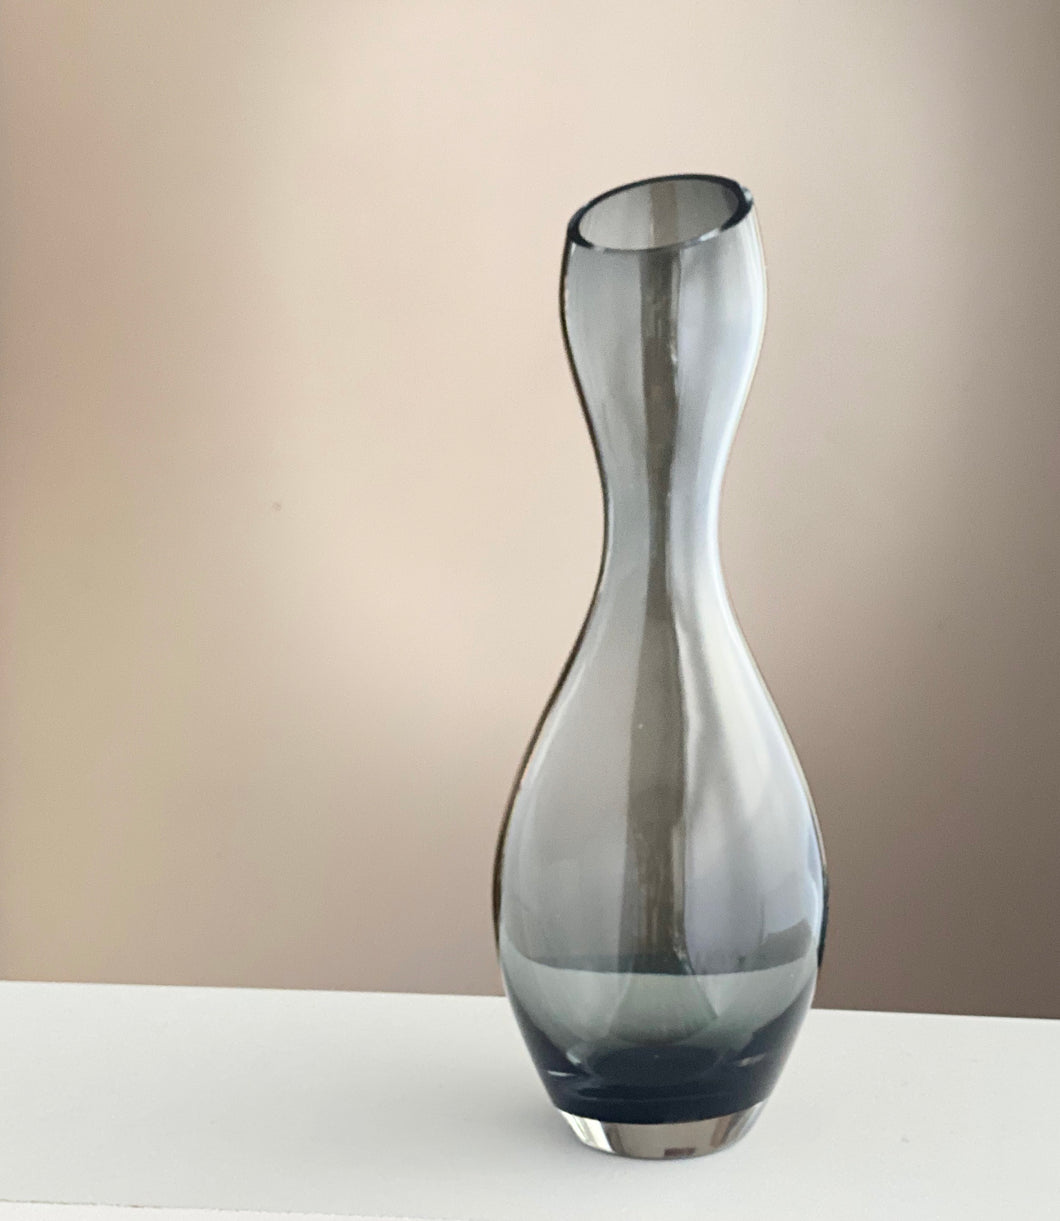 Rosenthal Vase from the Home|Design range Design credited to Beate Kuhn